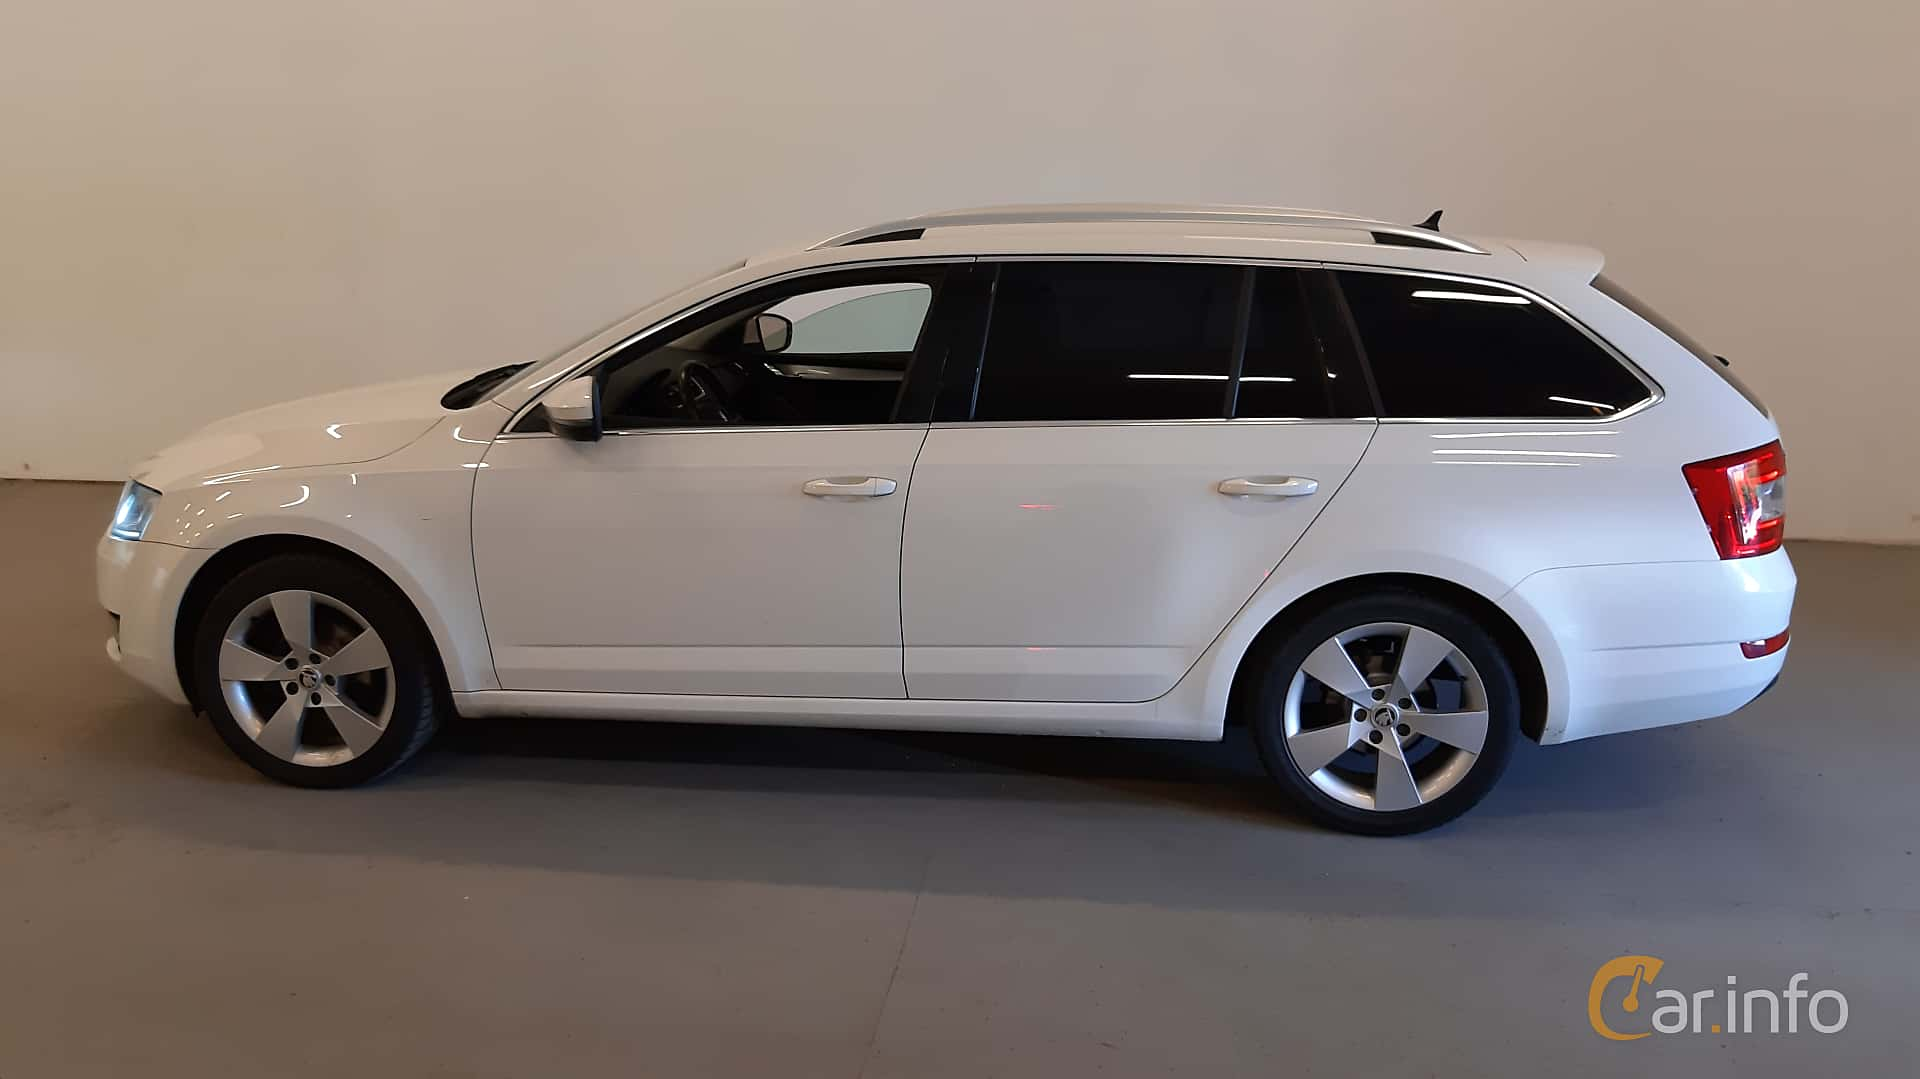 Sida av Skoda Octavia Combi 1.6 TDI Manual, 110ps, 2016